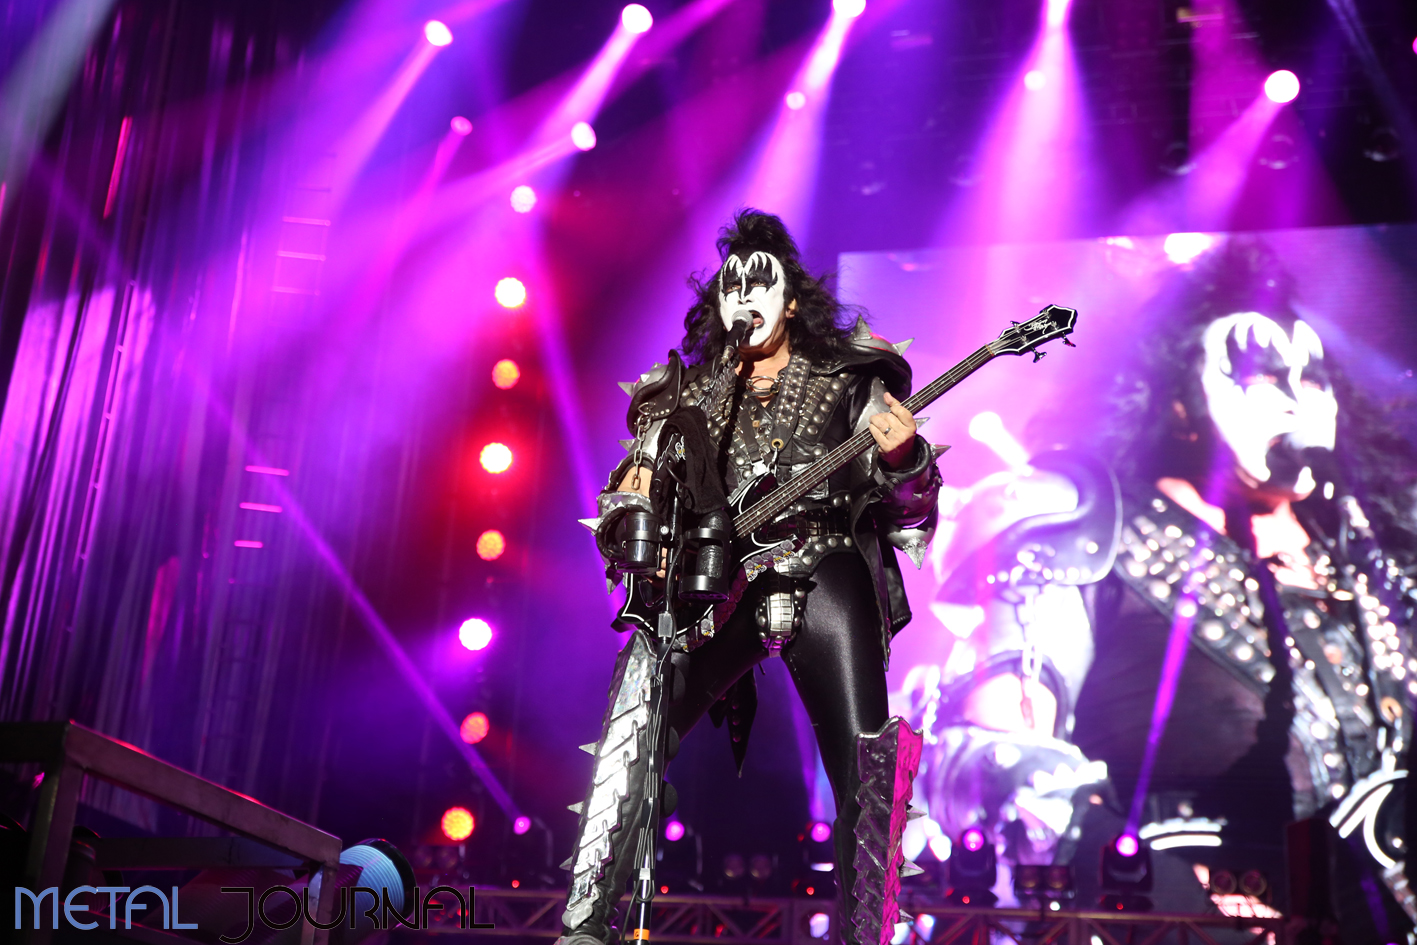 kiss rock fest 18 - metal journal pic 5